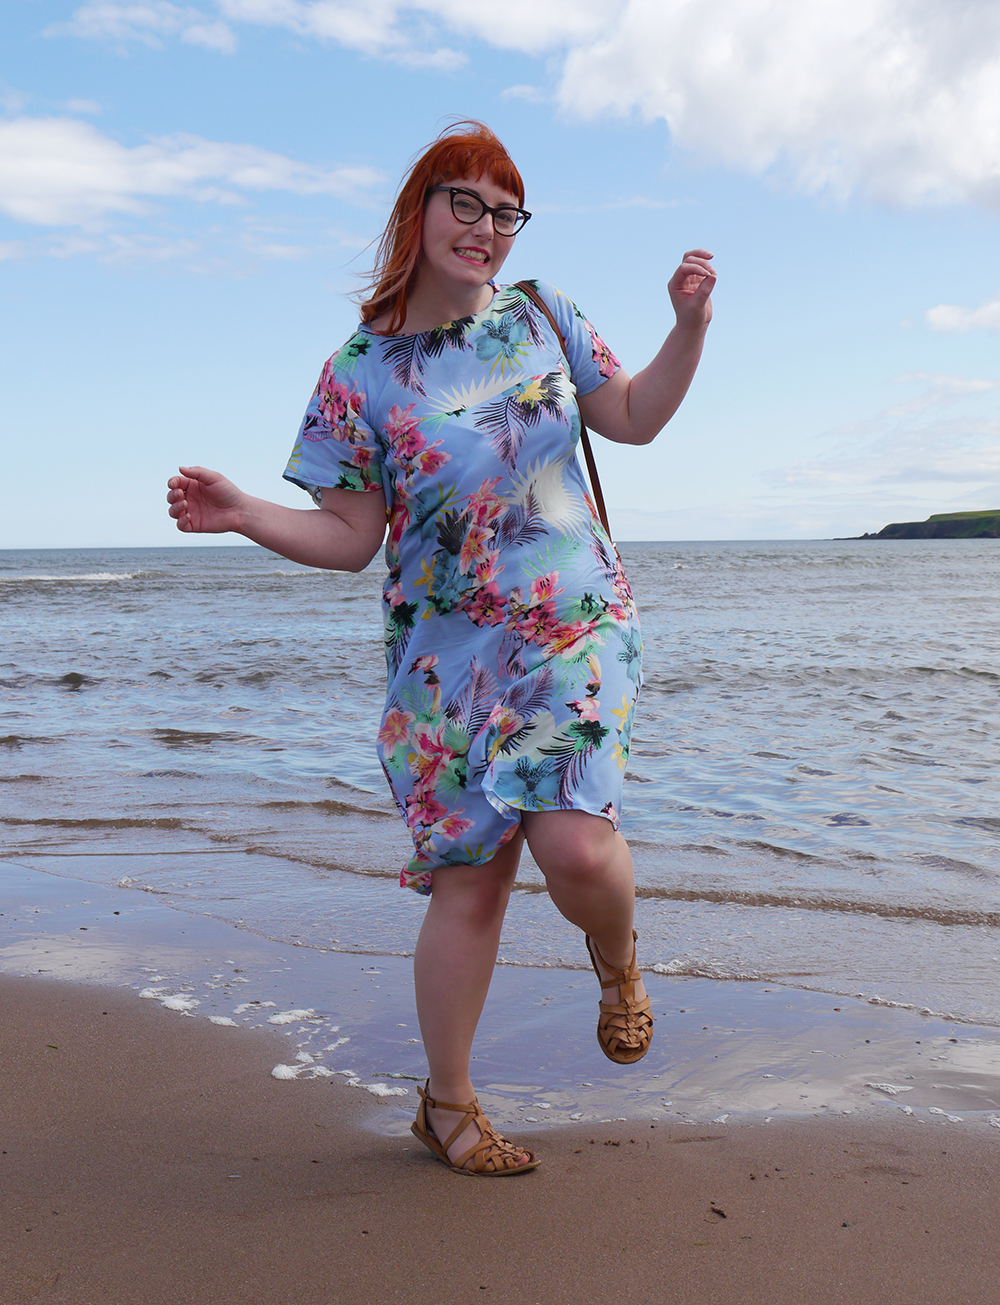 summer style, tropical style, beach style, DIY dress, dressmaking, Styled by Helen: Tropical, red head, ginger, Topshop sandals, Tom Pigeon earrings, The Whitepepper bread bag